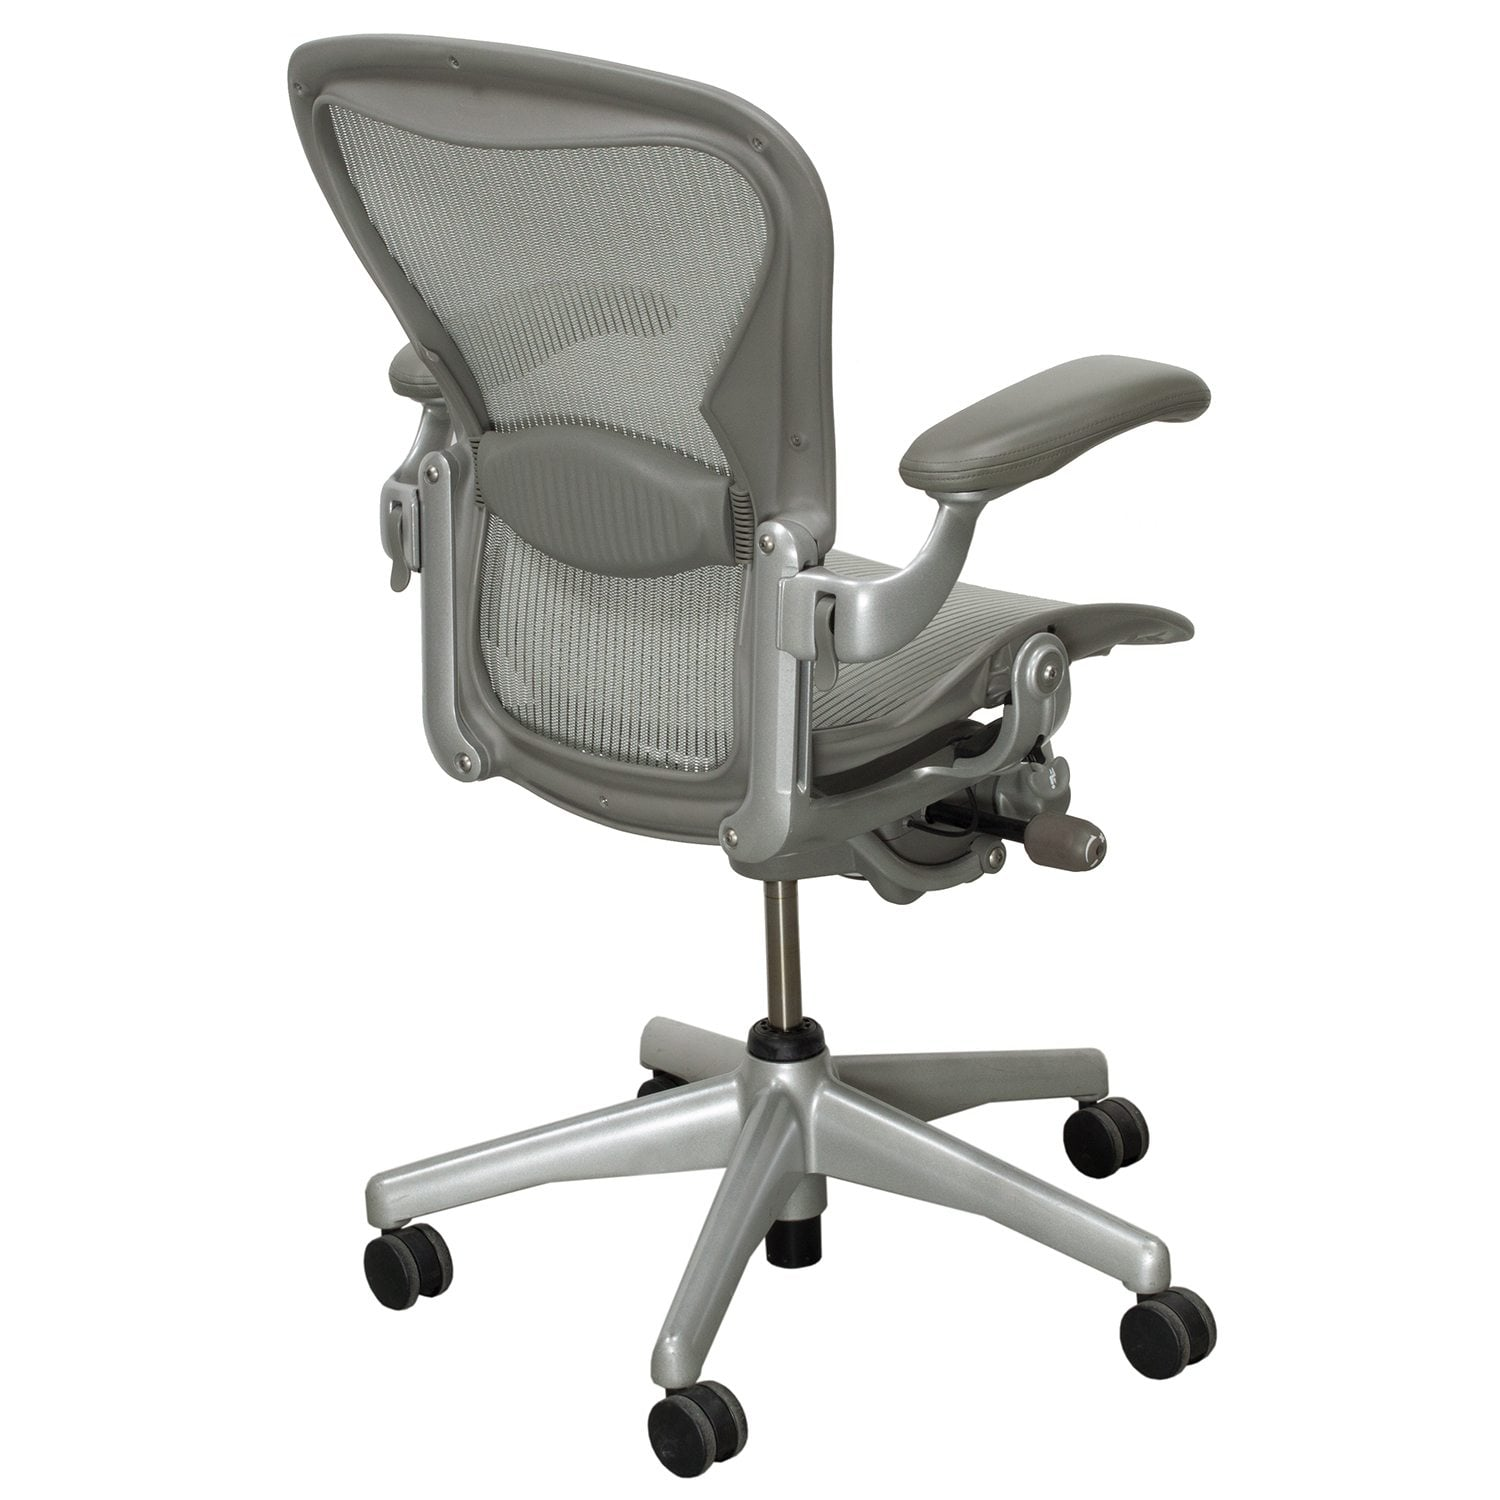 aeron chair accessories monoblock covers for rent herman miller used size b full function task